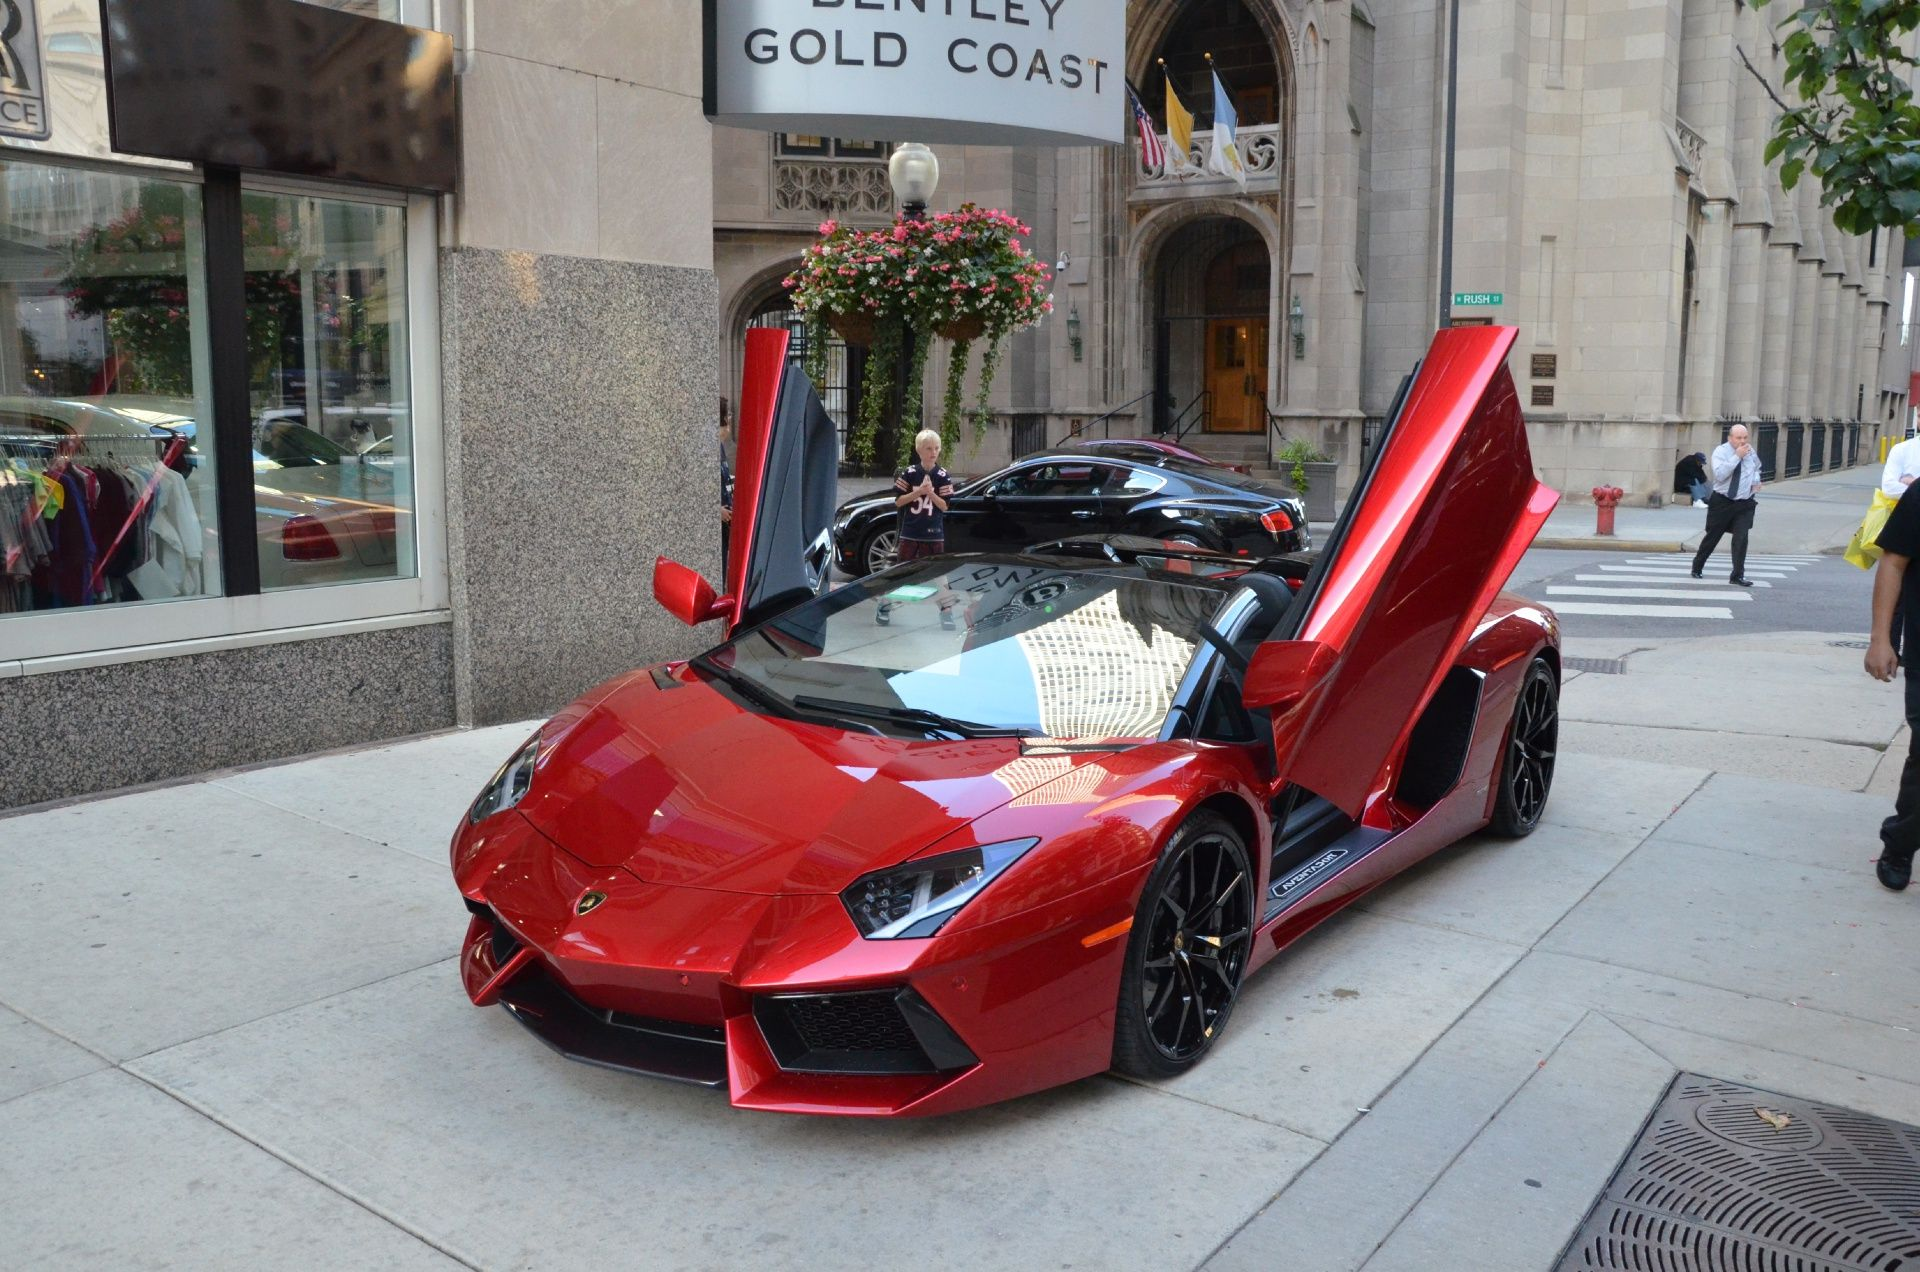 jasmines 2015 lamborghini aventador given to her by ironman himself and of course it had to be red